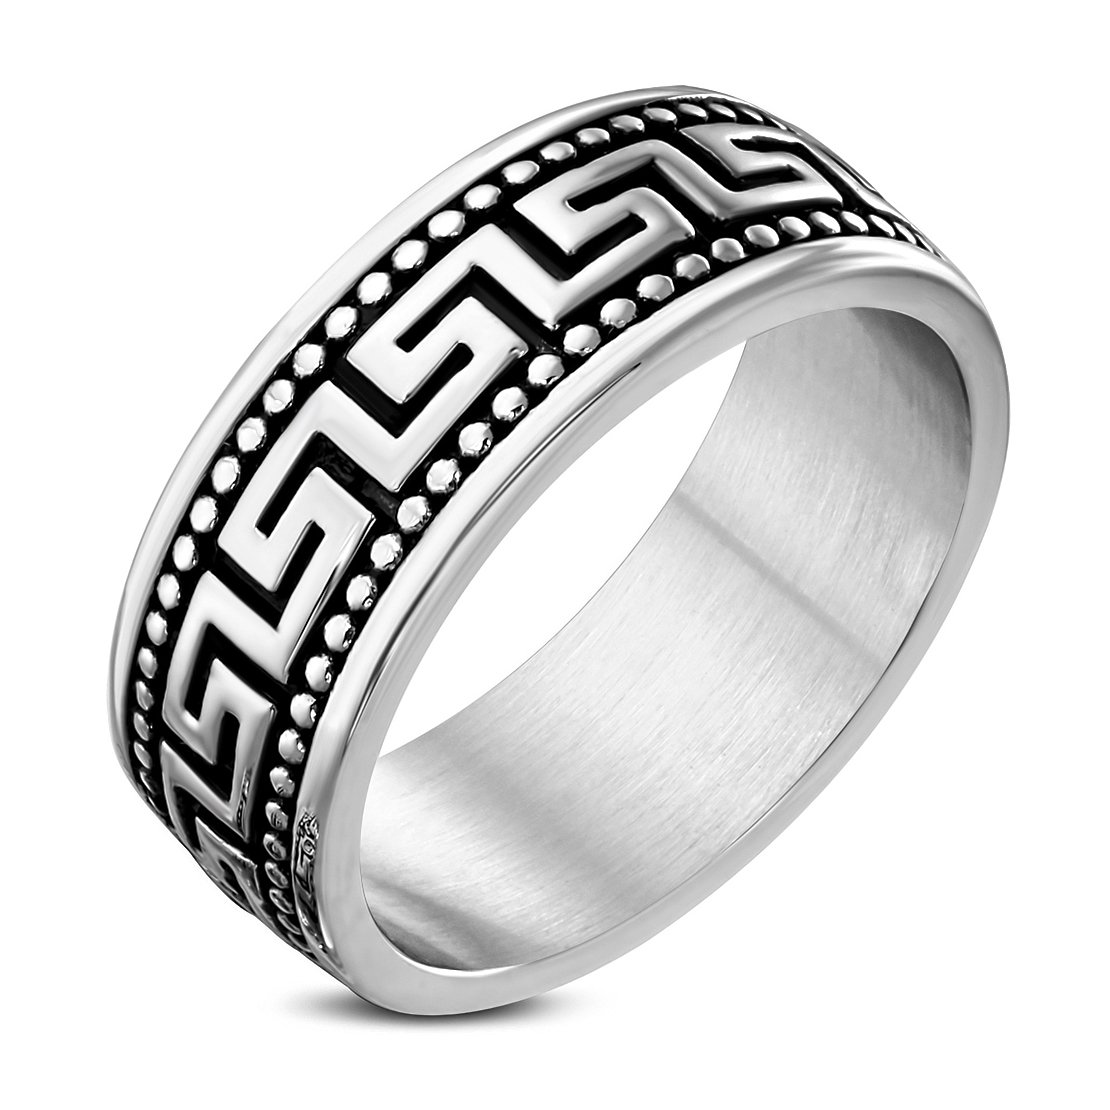 Stainless Steel 2 Color Caviar Bead Greek Key Flat Band Ring